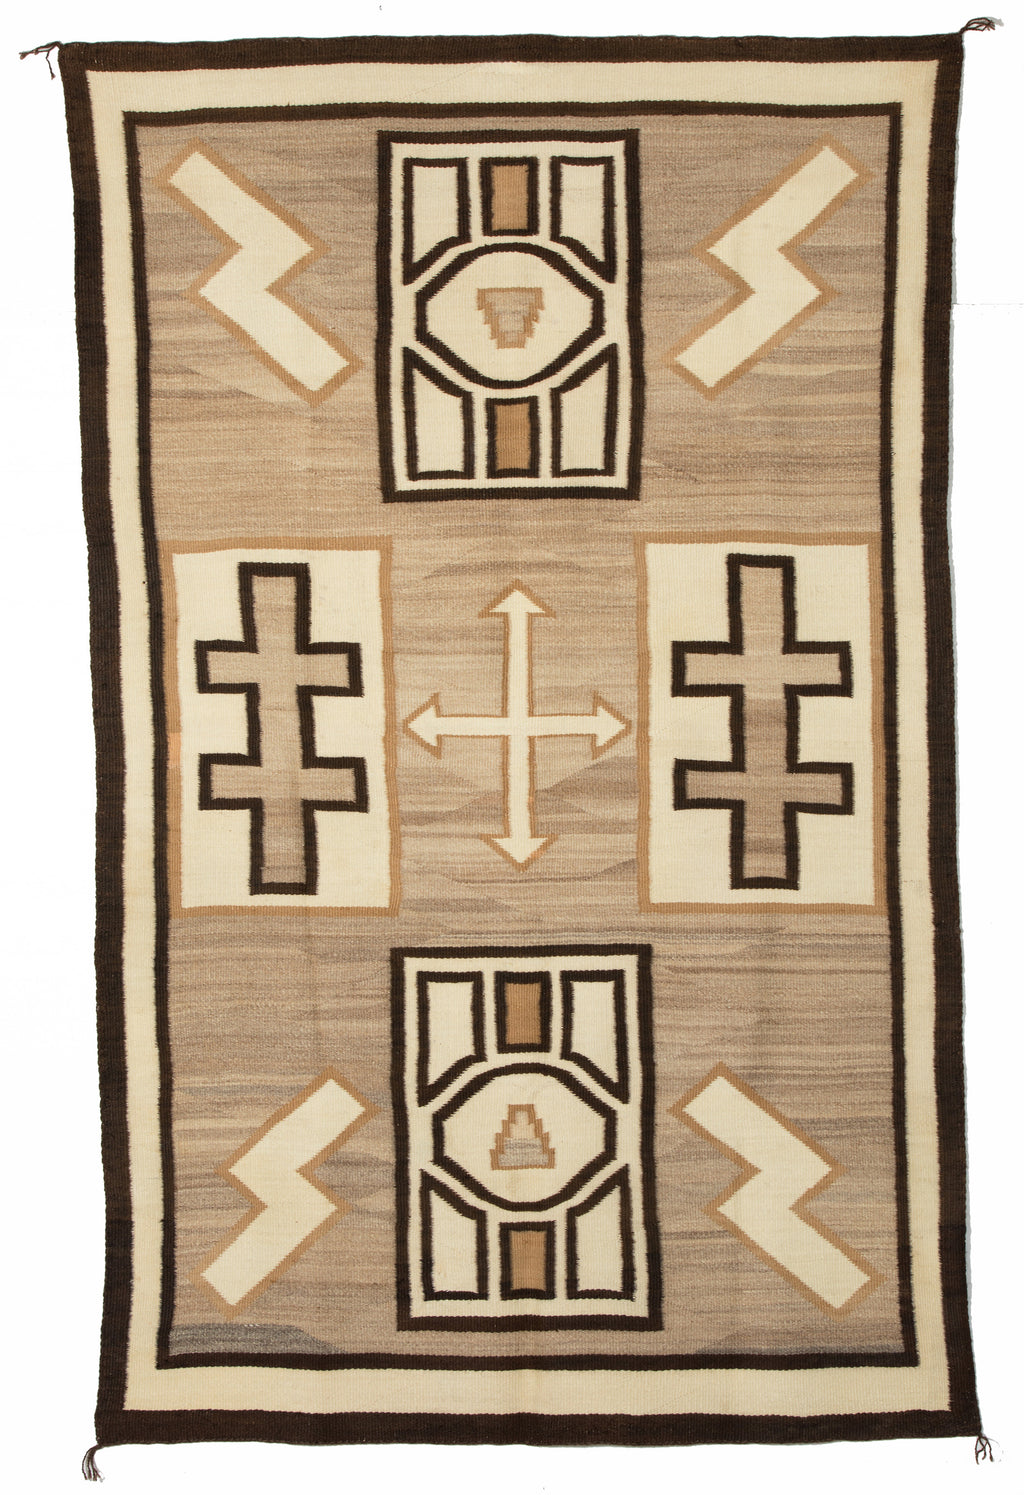 Two Grey Hills Navajo Rug-Historic